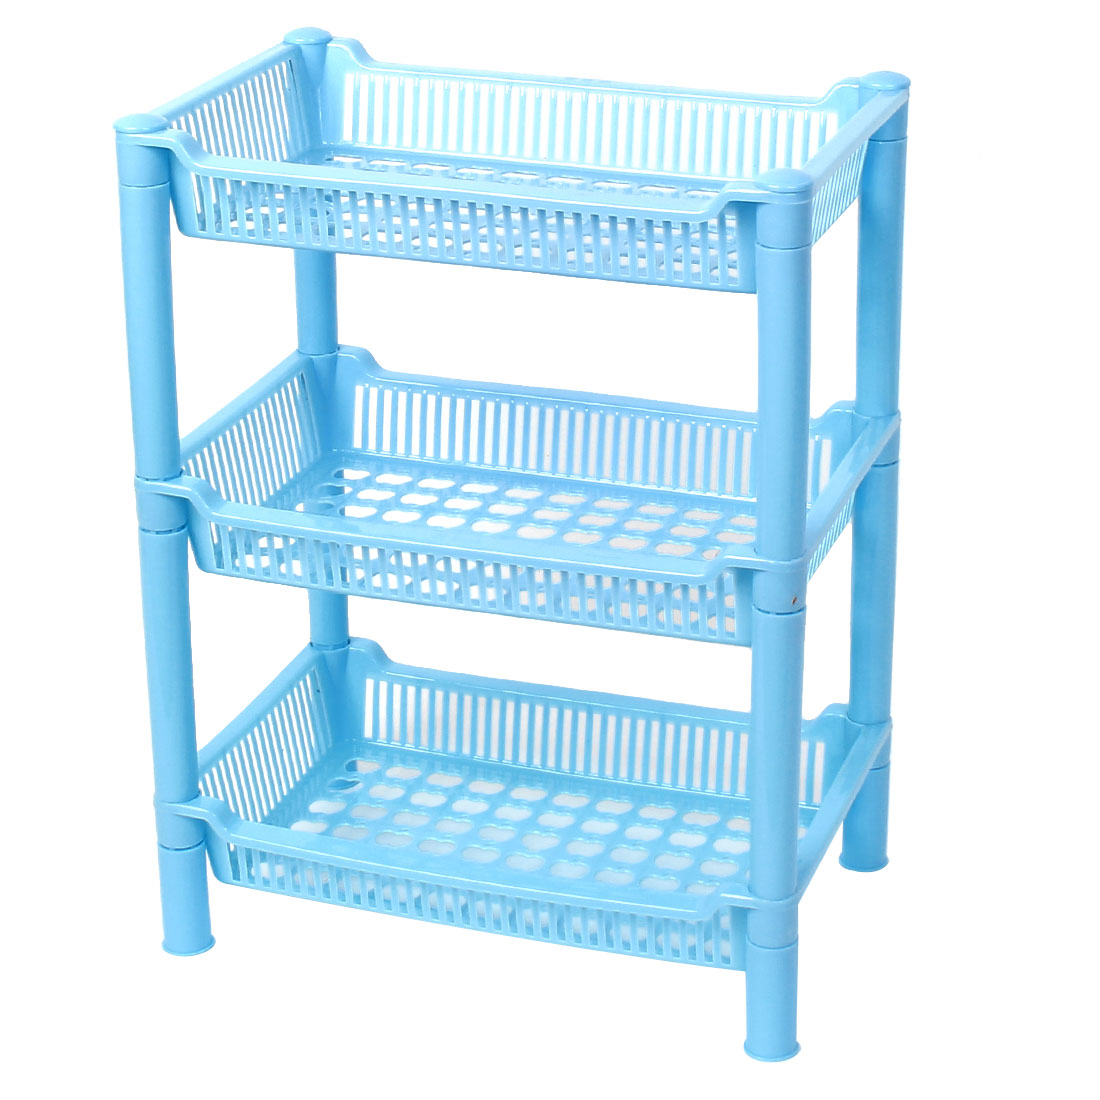 Home Bathroom Kitchen Blue Plastic 3 Layers Hollow Out Bottom Shelf Corner Storage Rack Holder Organizer